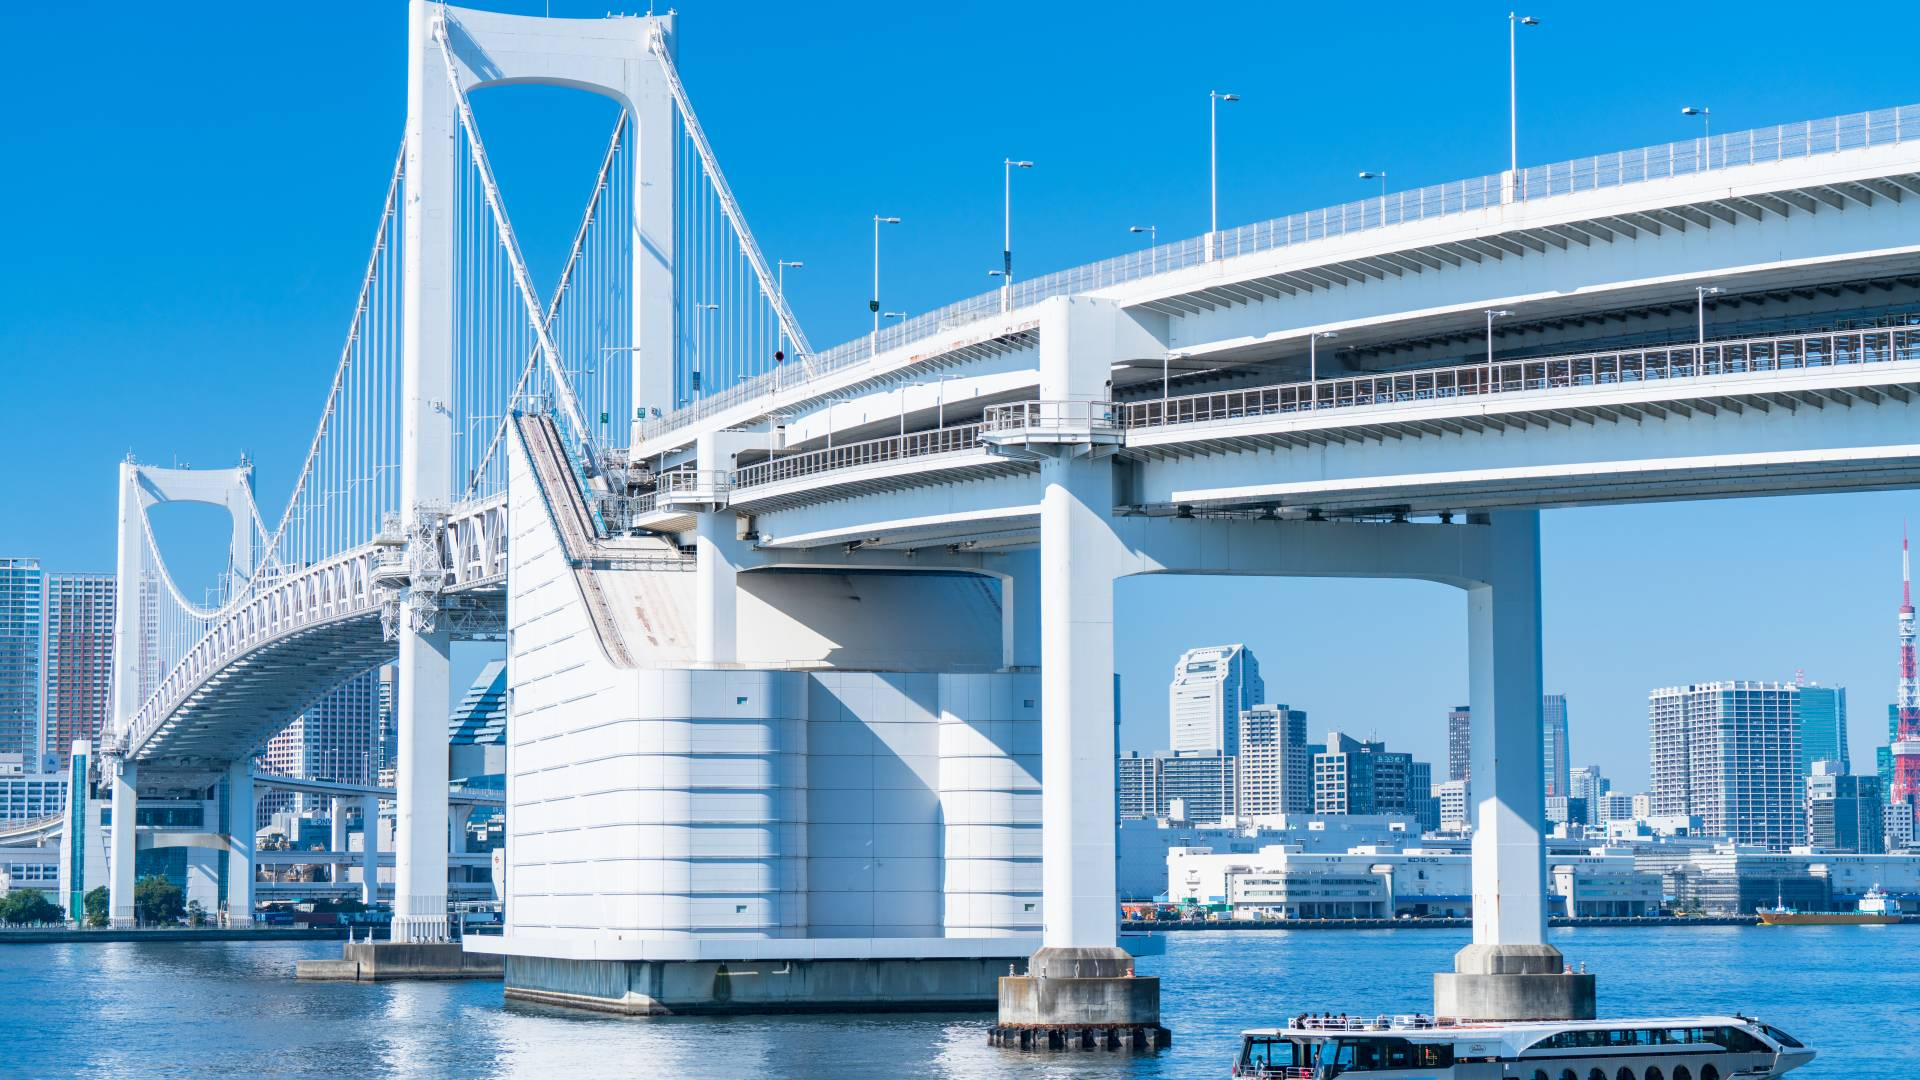 Rainbow Bridge and Oedo Onsen